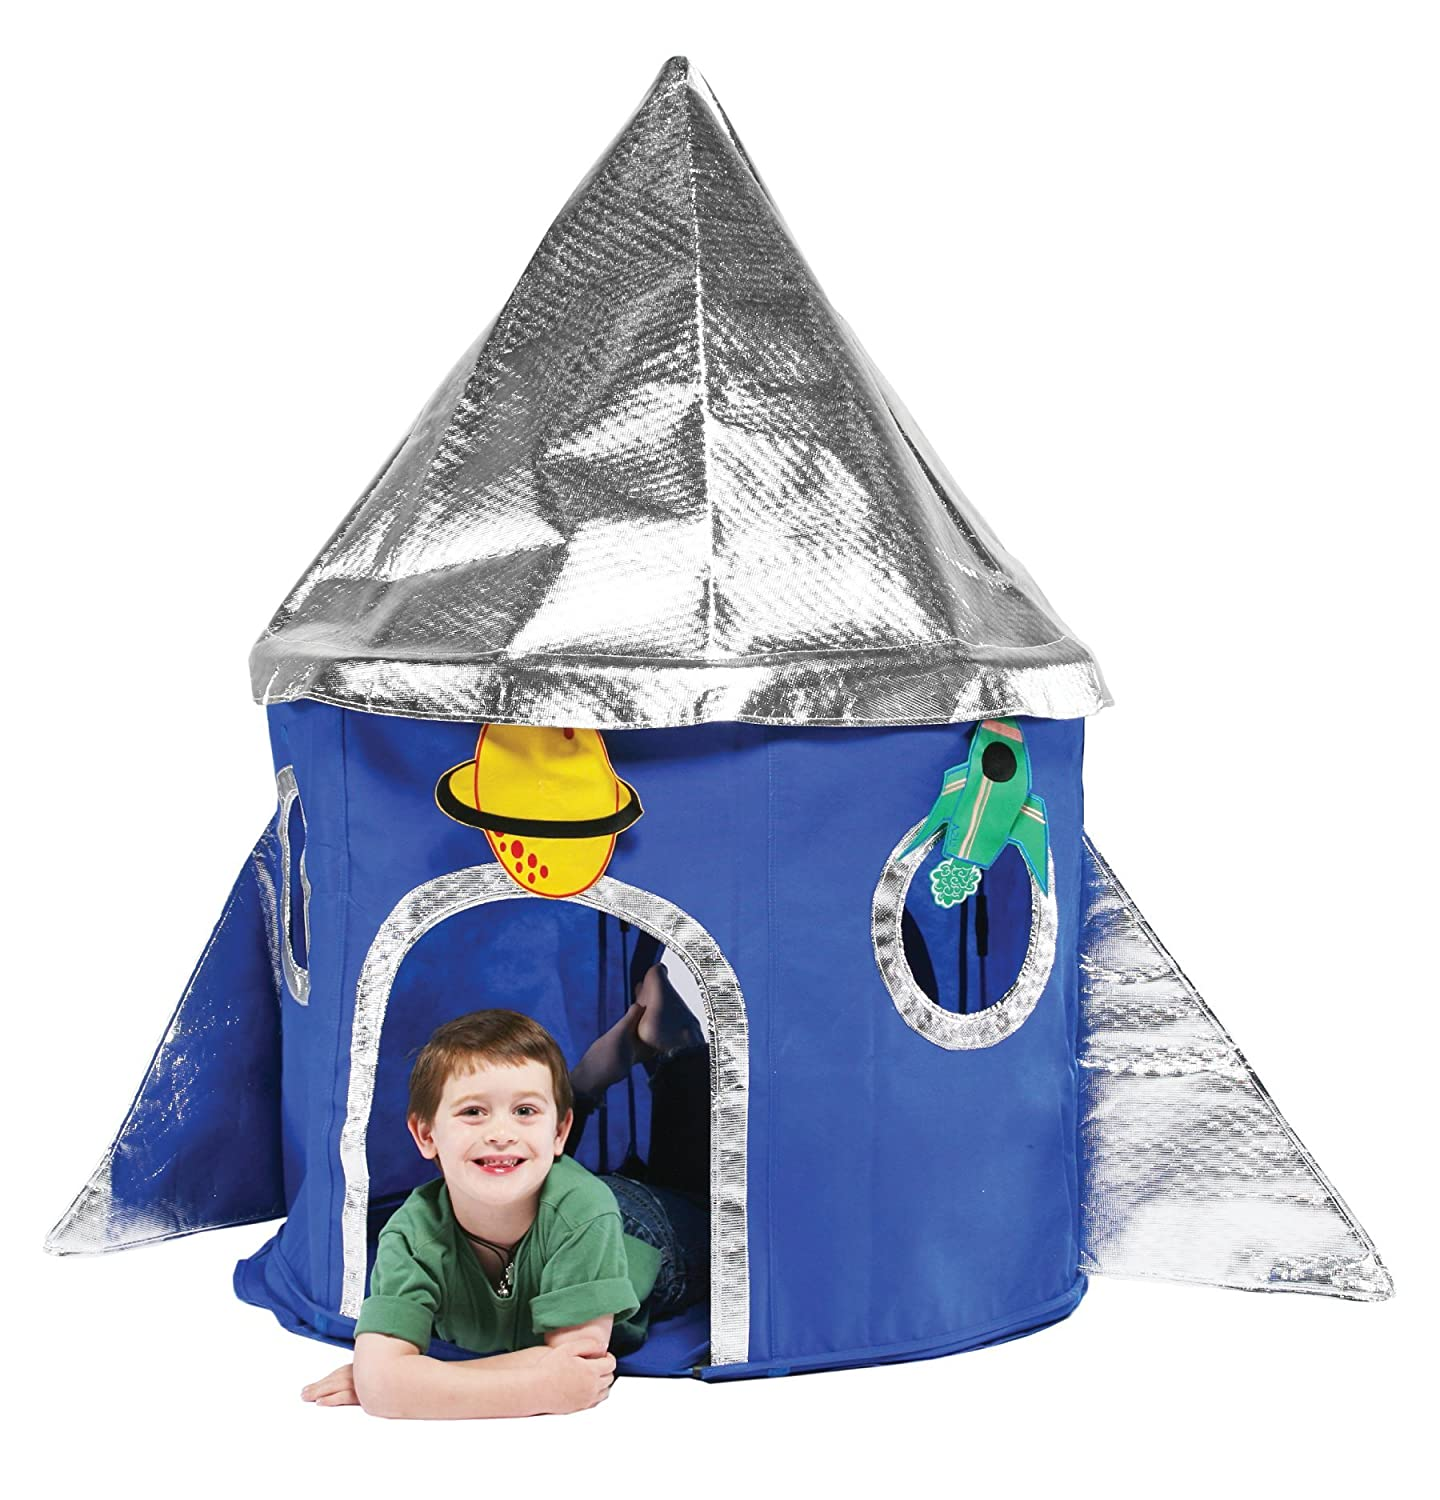 bazoongi special edition rocket play tent amazon co uk toys u0026 games